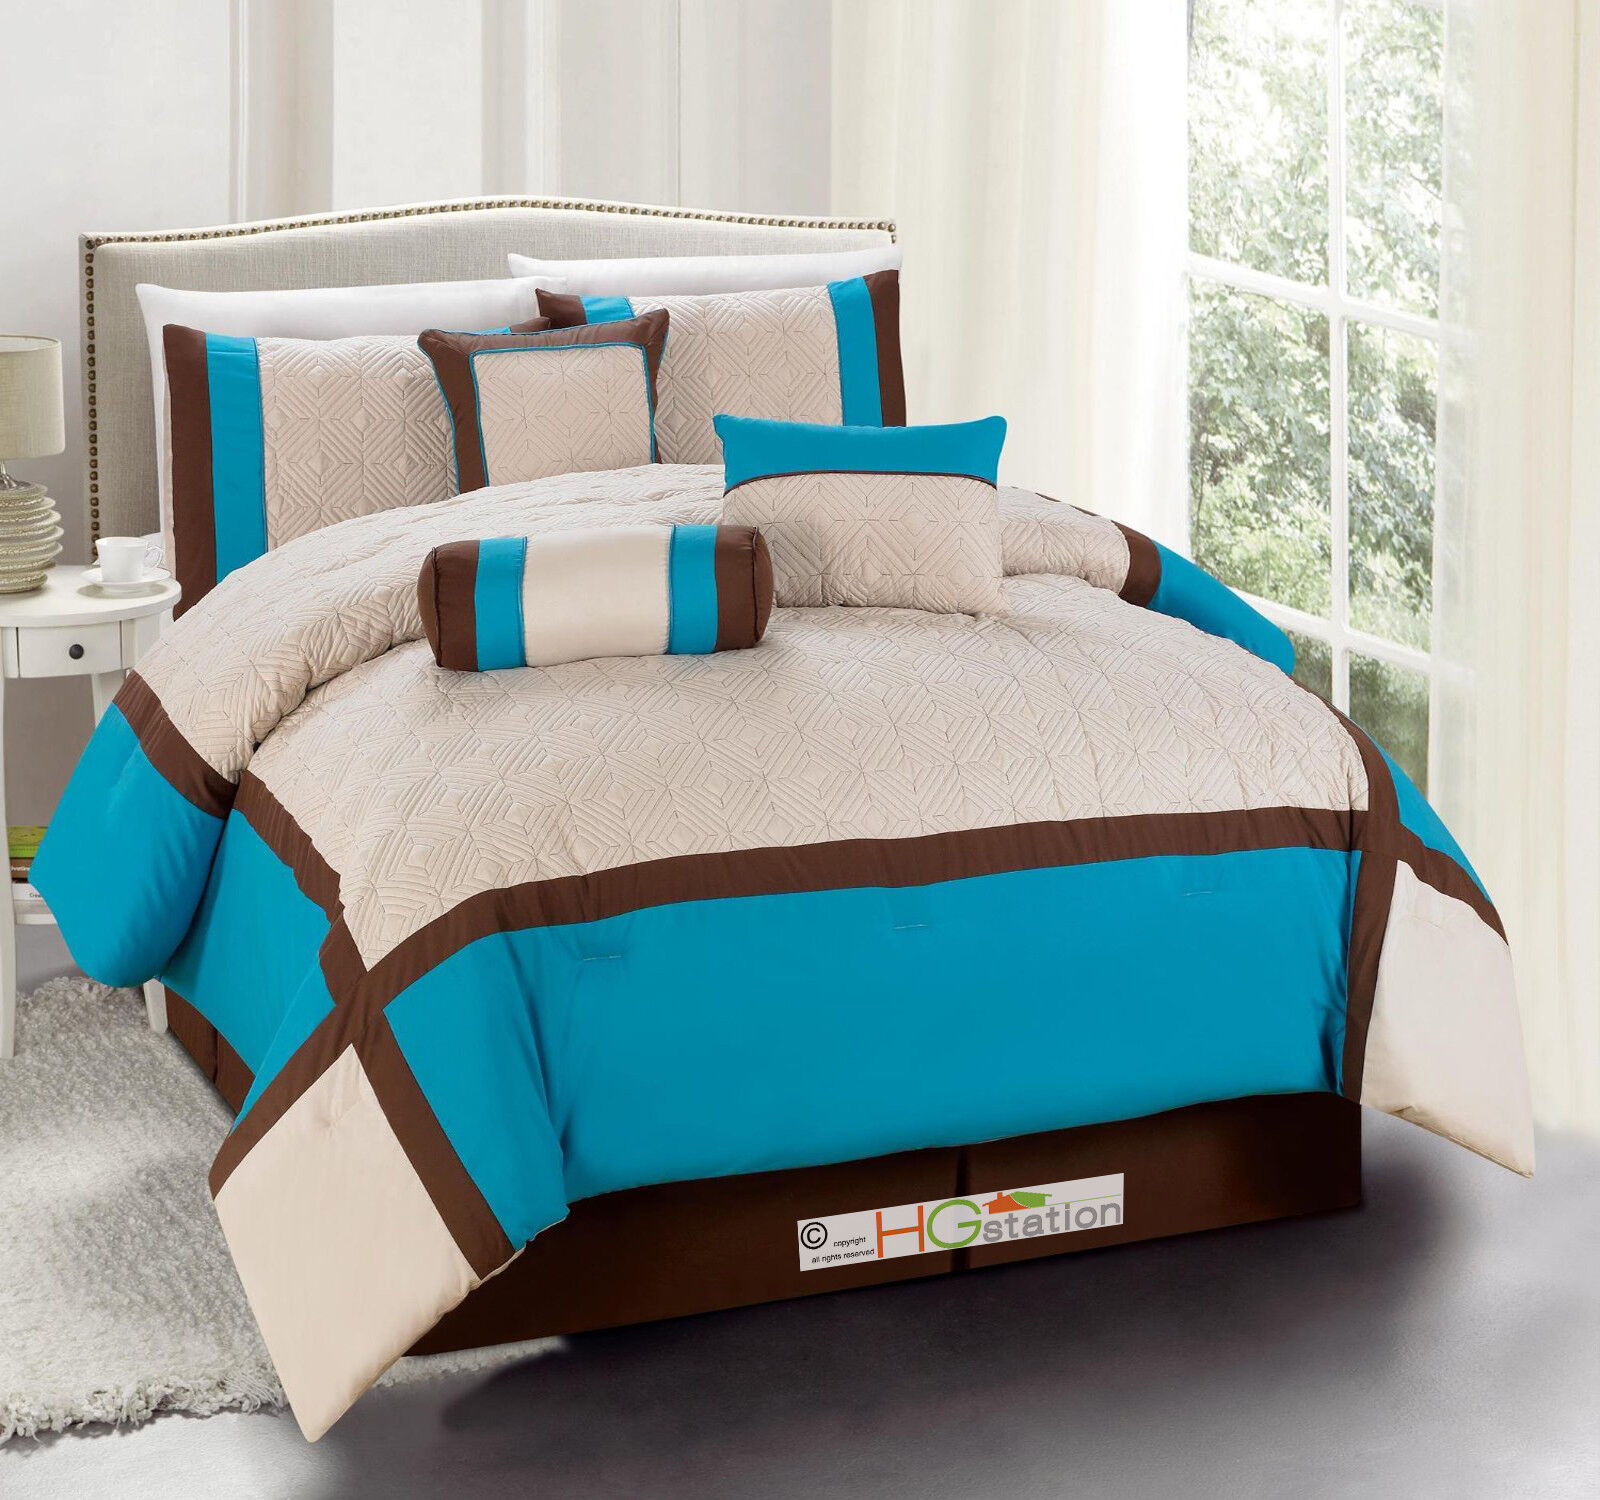 11 Quilted Diamond Square Patchwork Comforter Curtain Set Turquoise Brown Queen